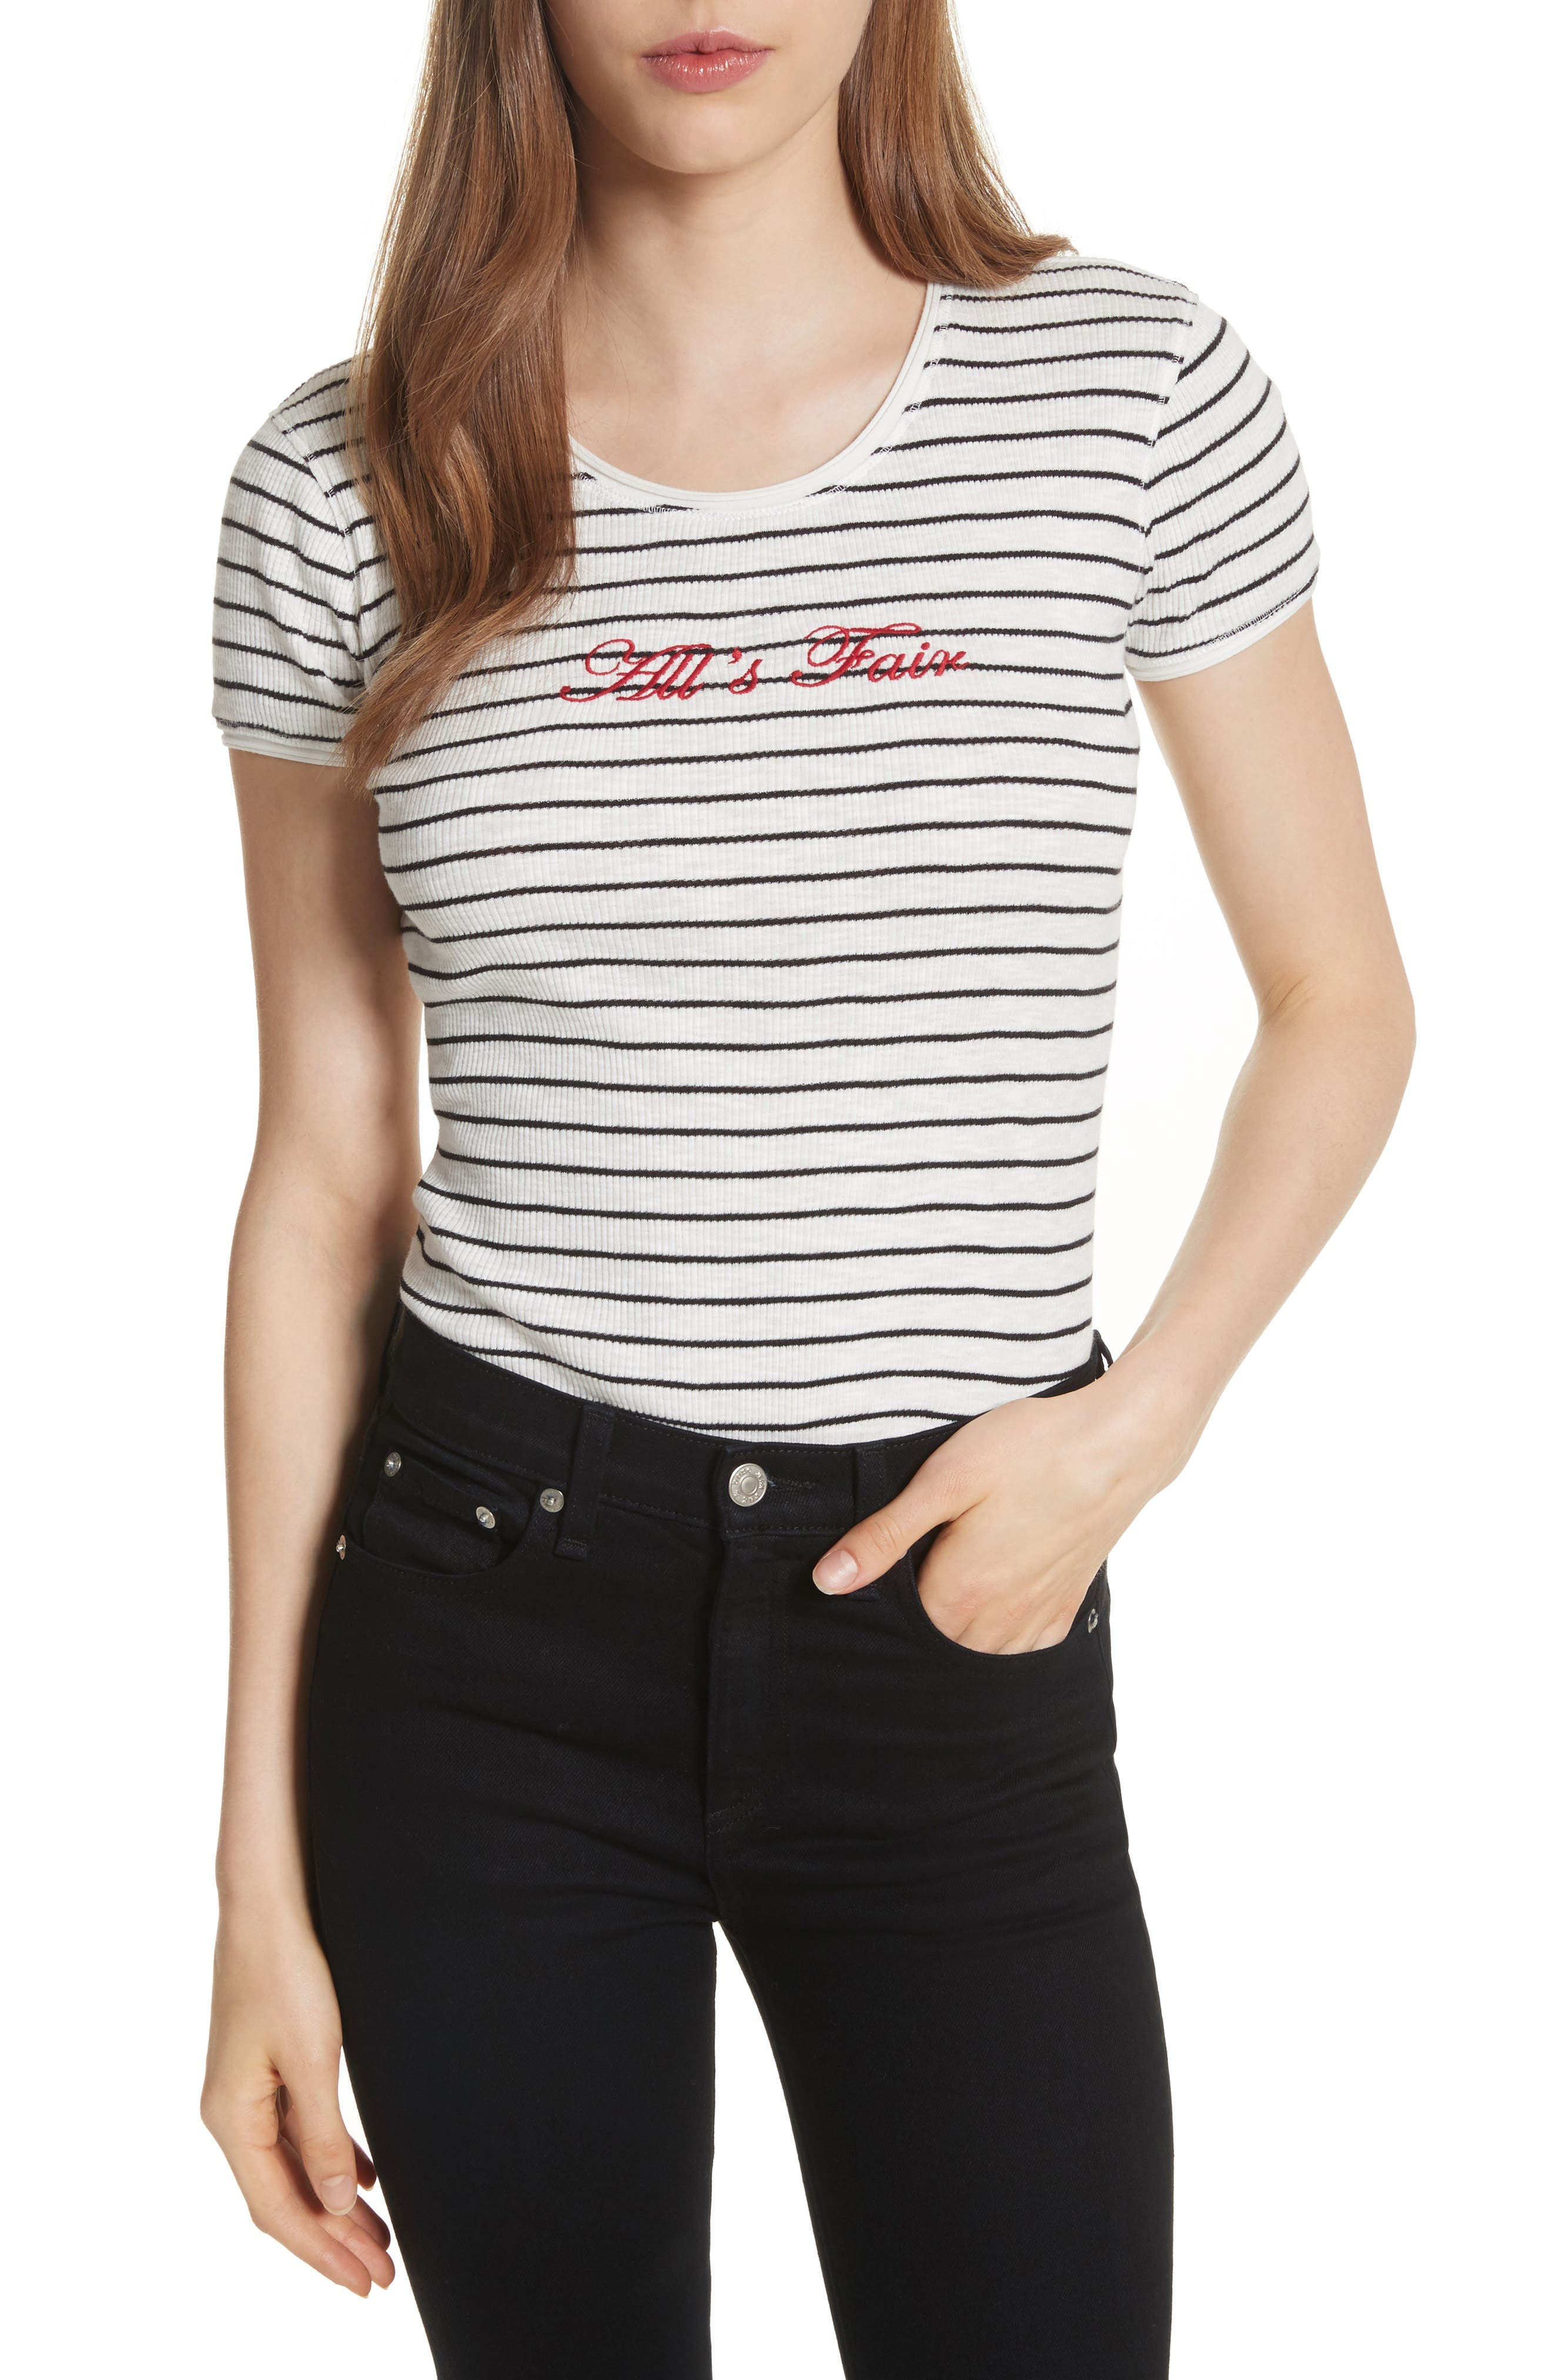 Embroidered Lilies Tee,                             Main thumbnail 1, color,                             Black/ Blanc